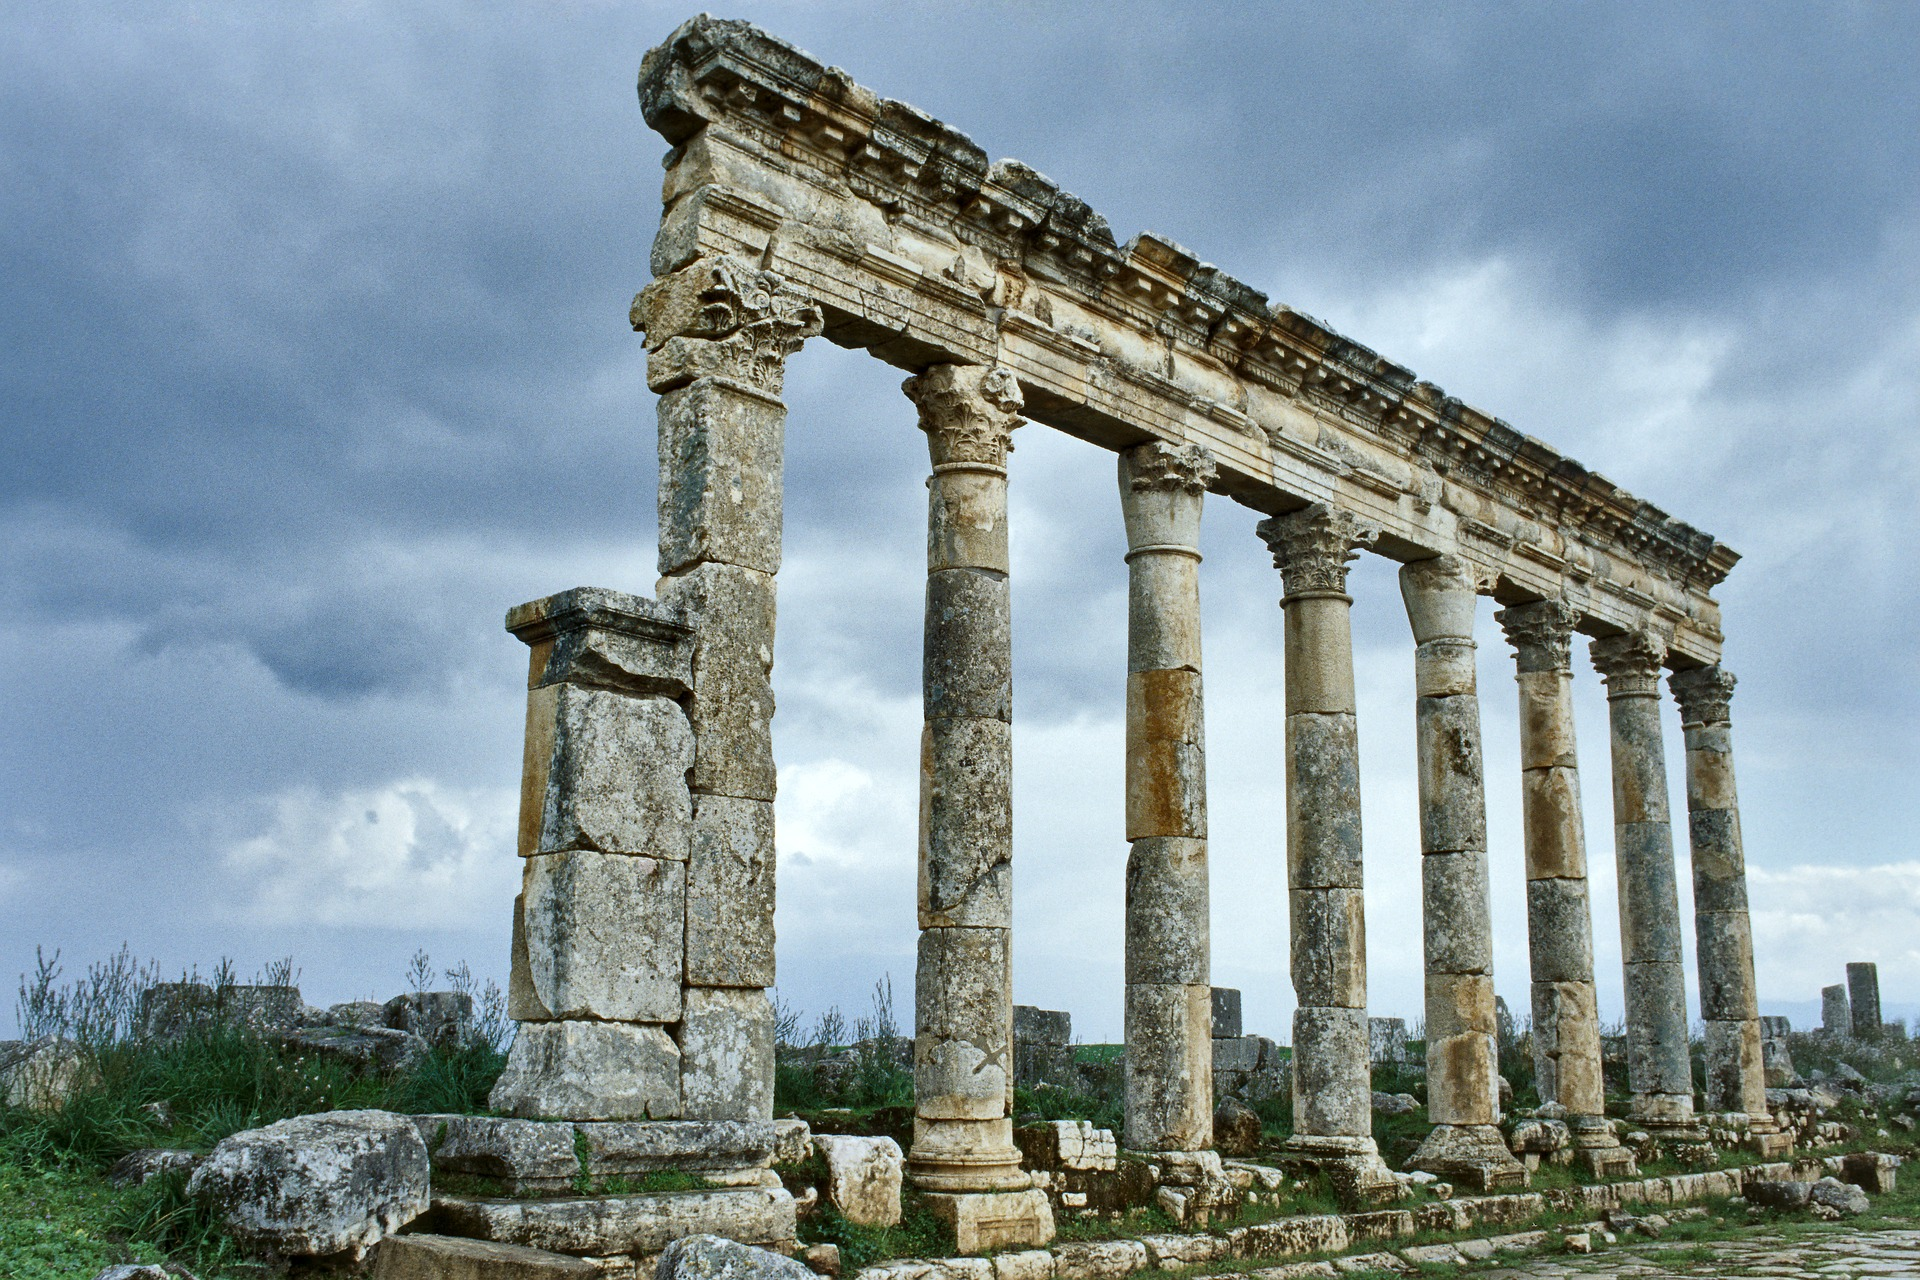 the colonnade of ancient Greece and Rome